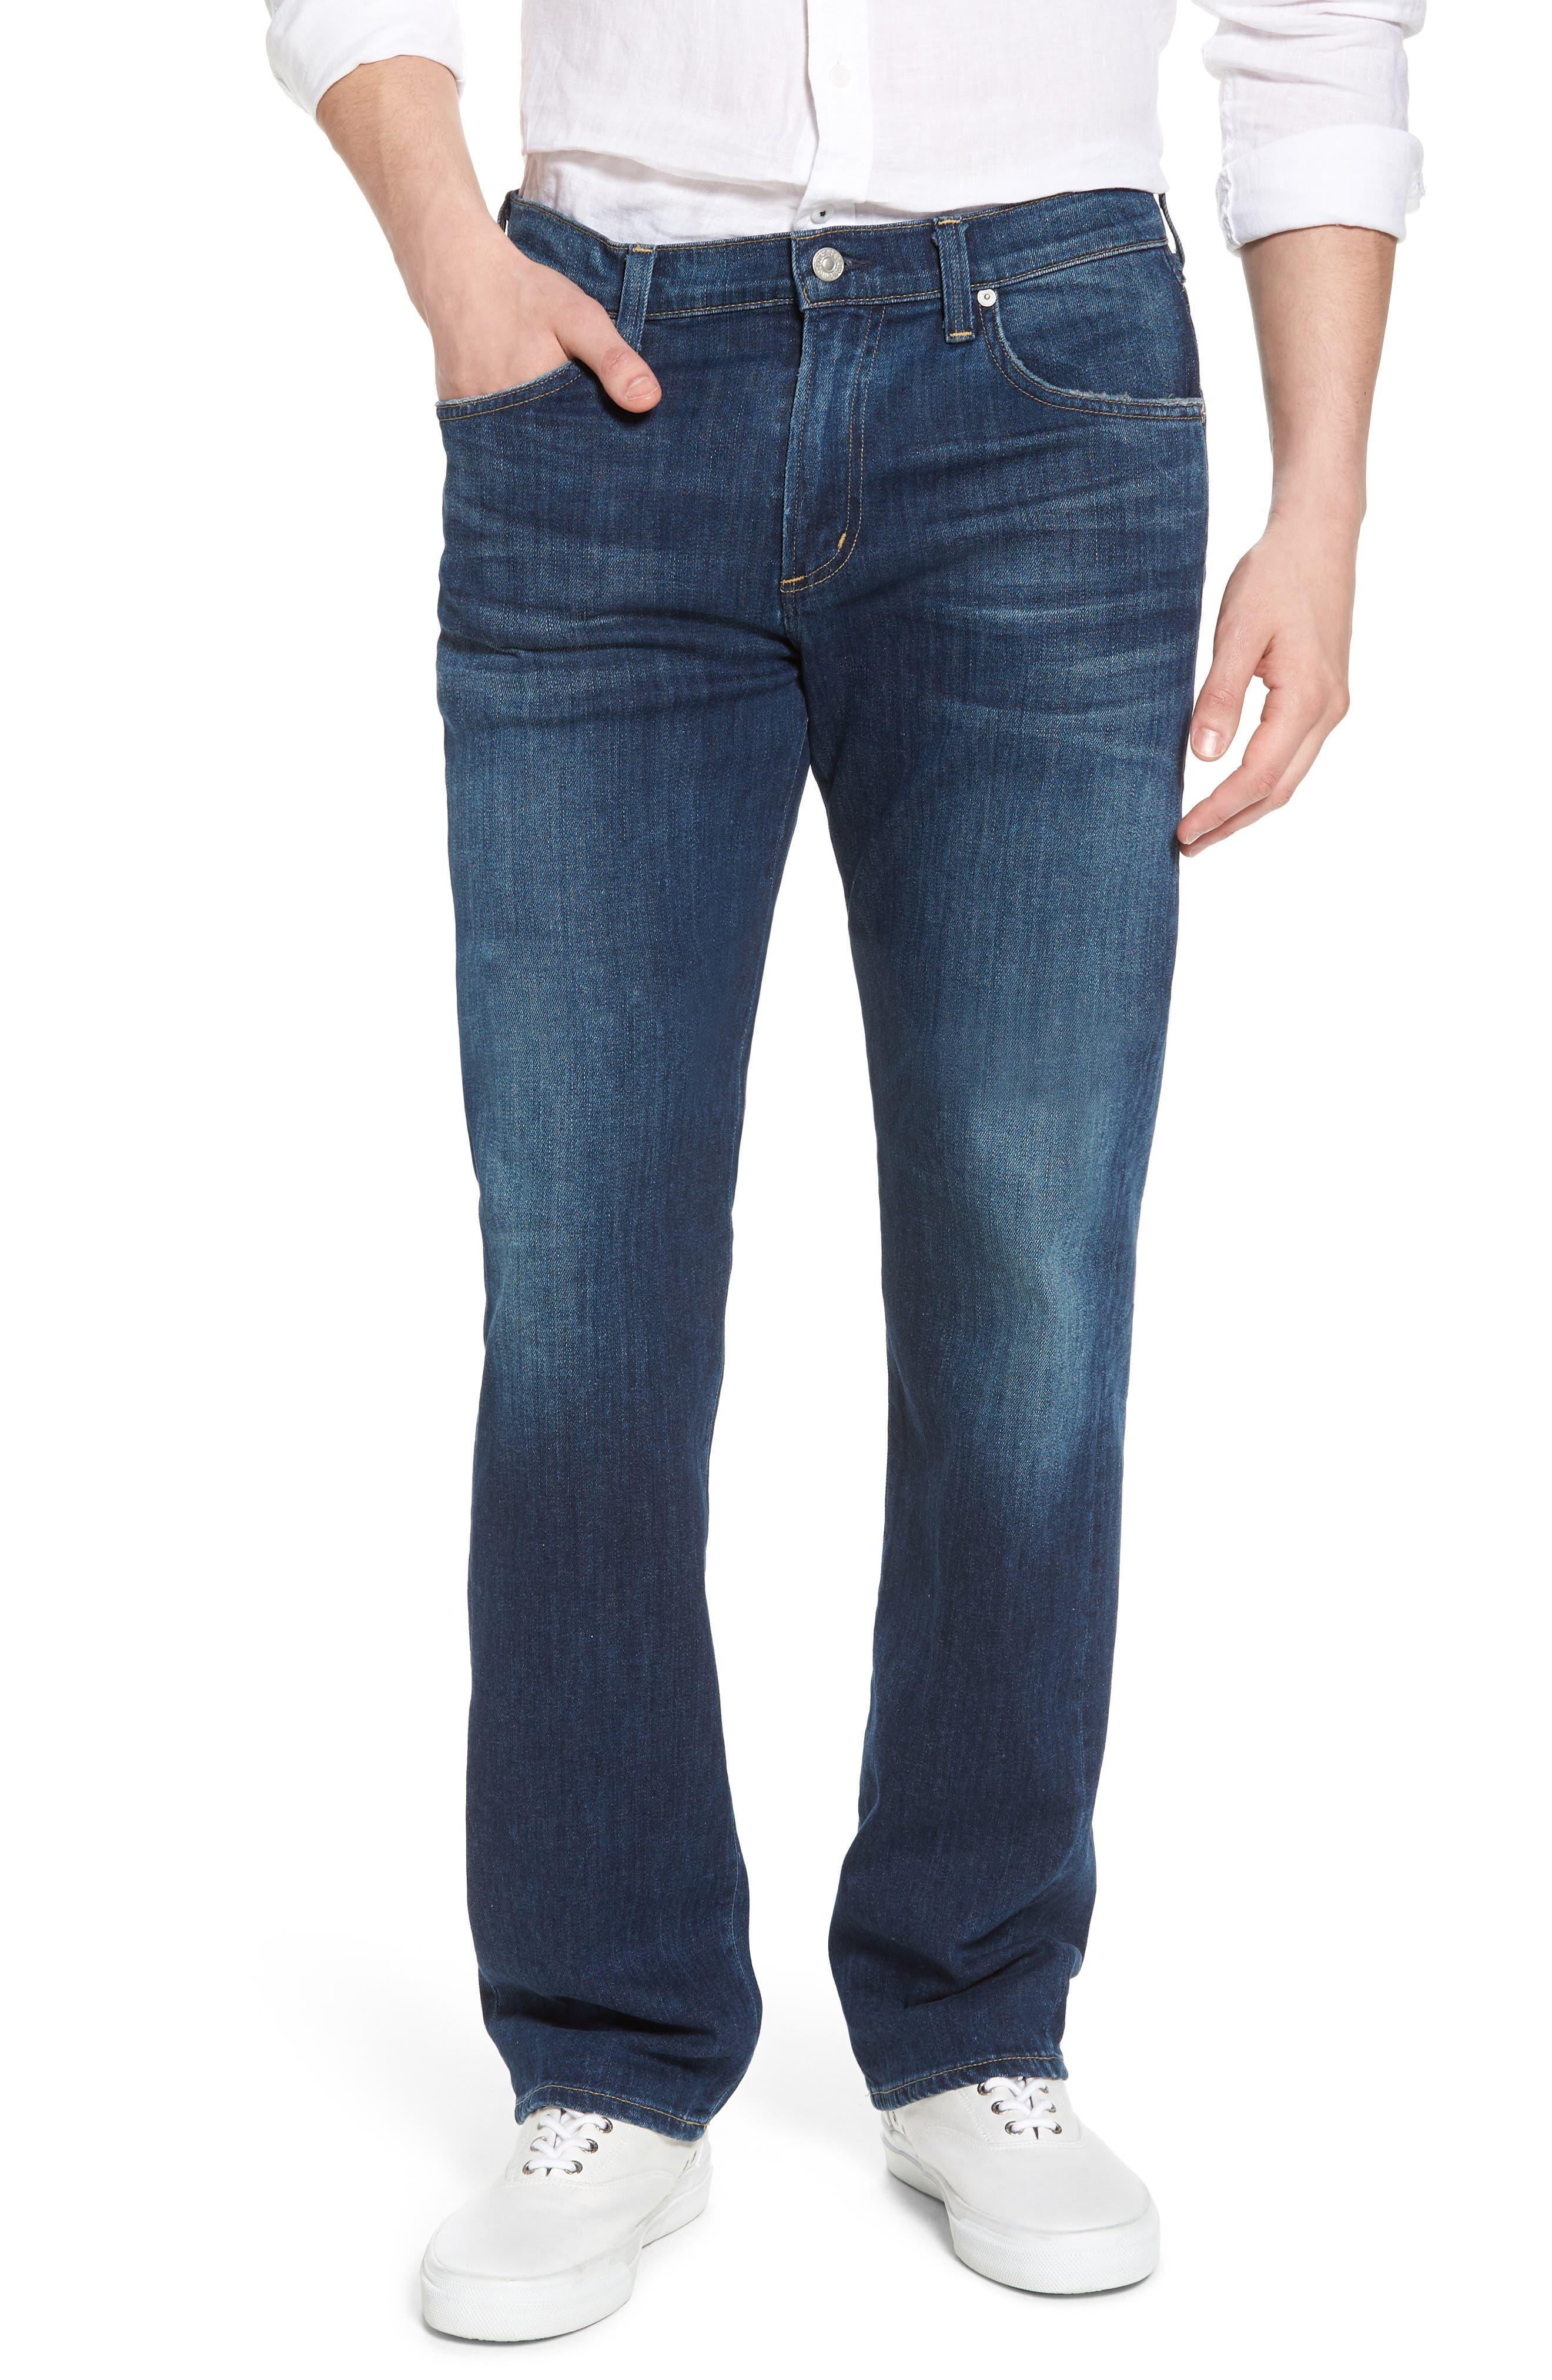 Sid Straight Leg Jeans,                         Main,                         color, Adler